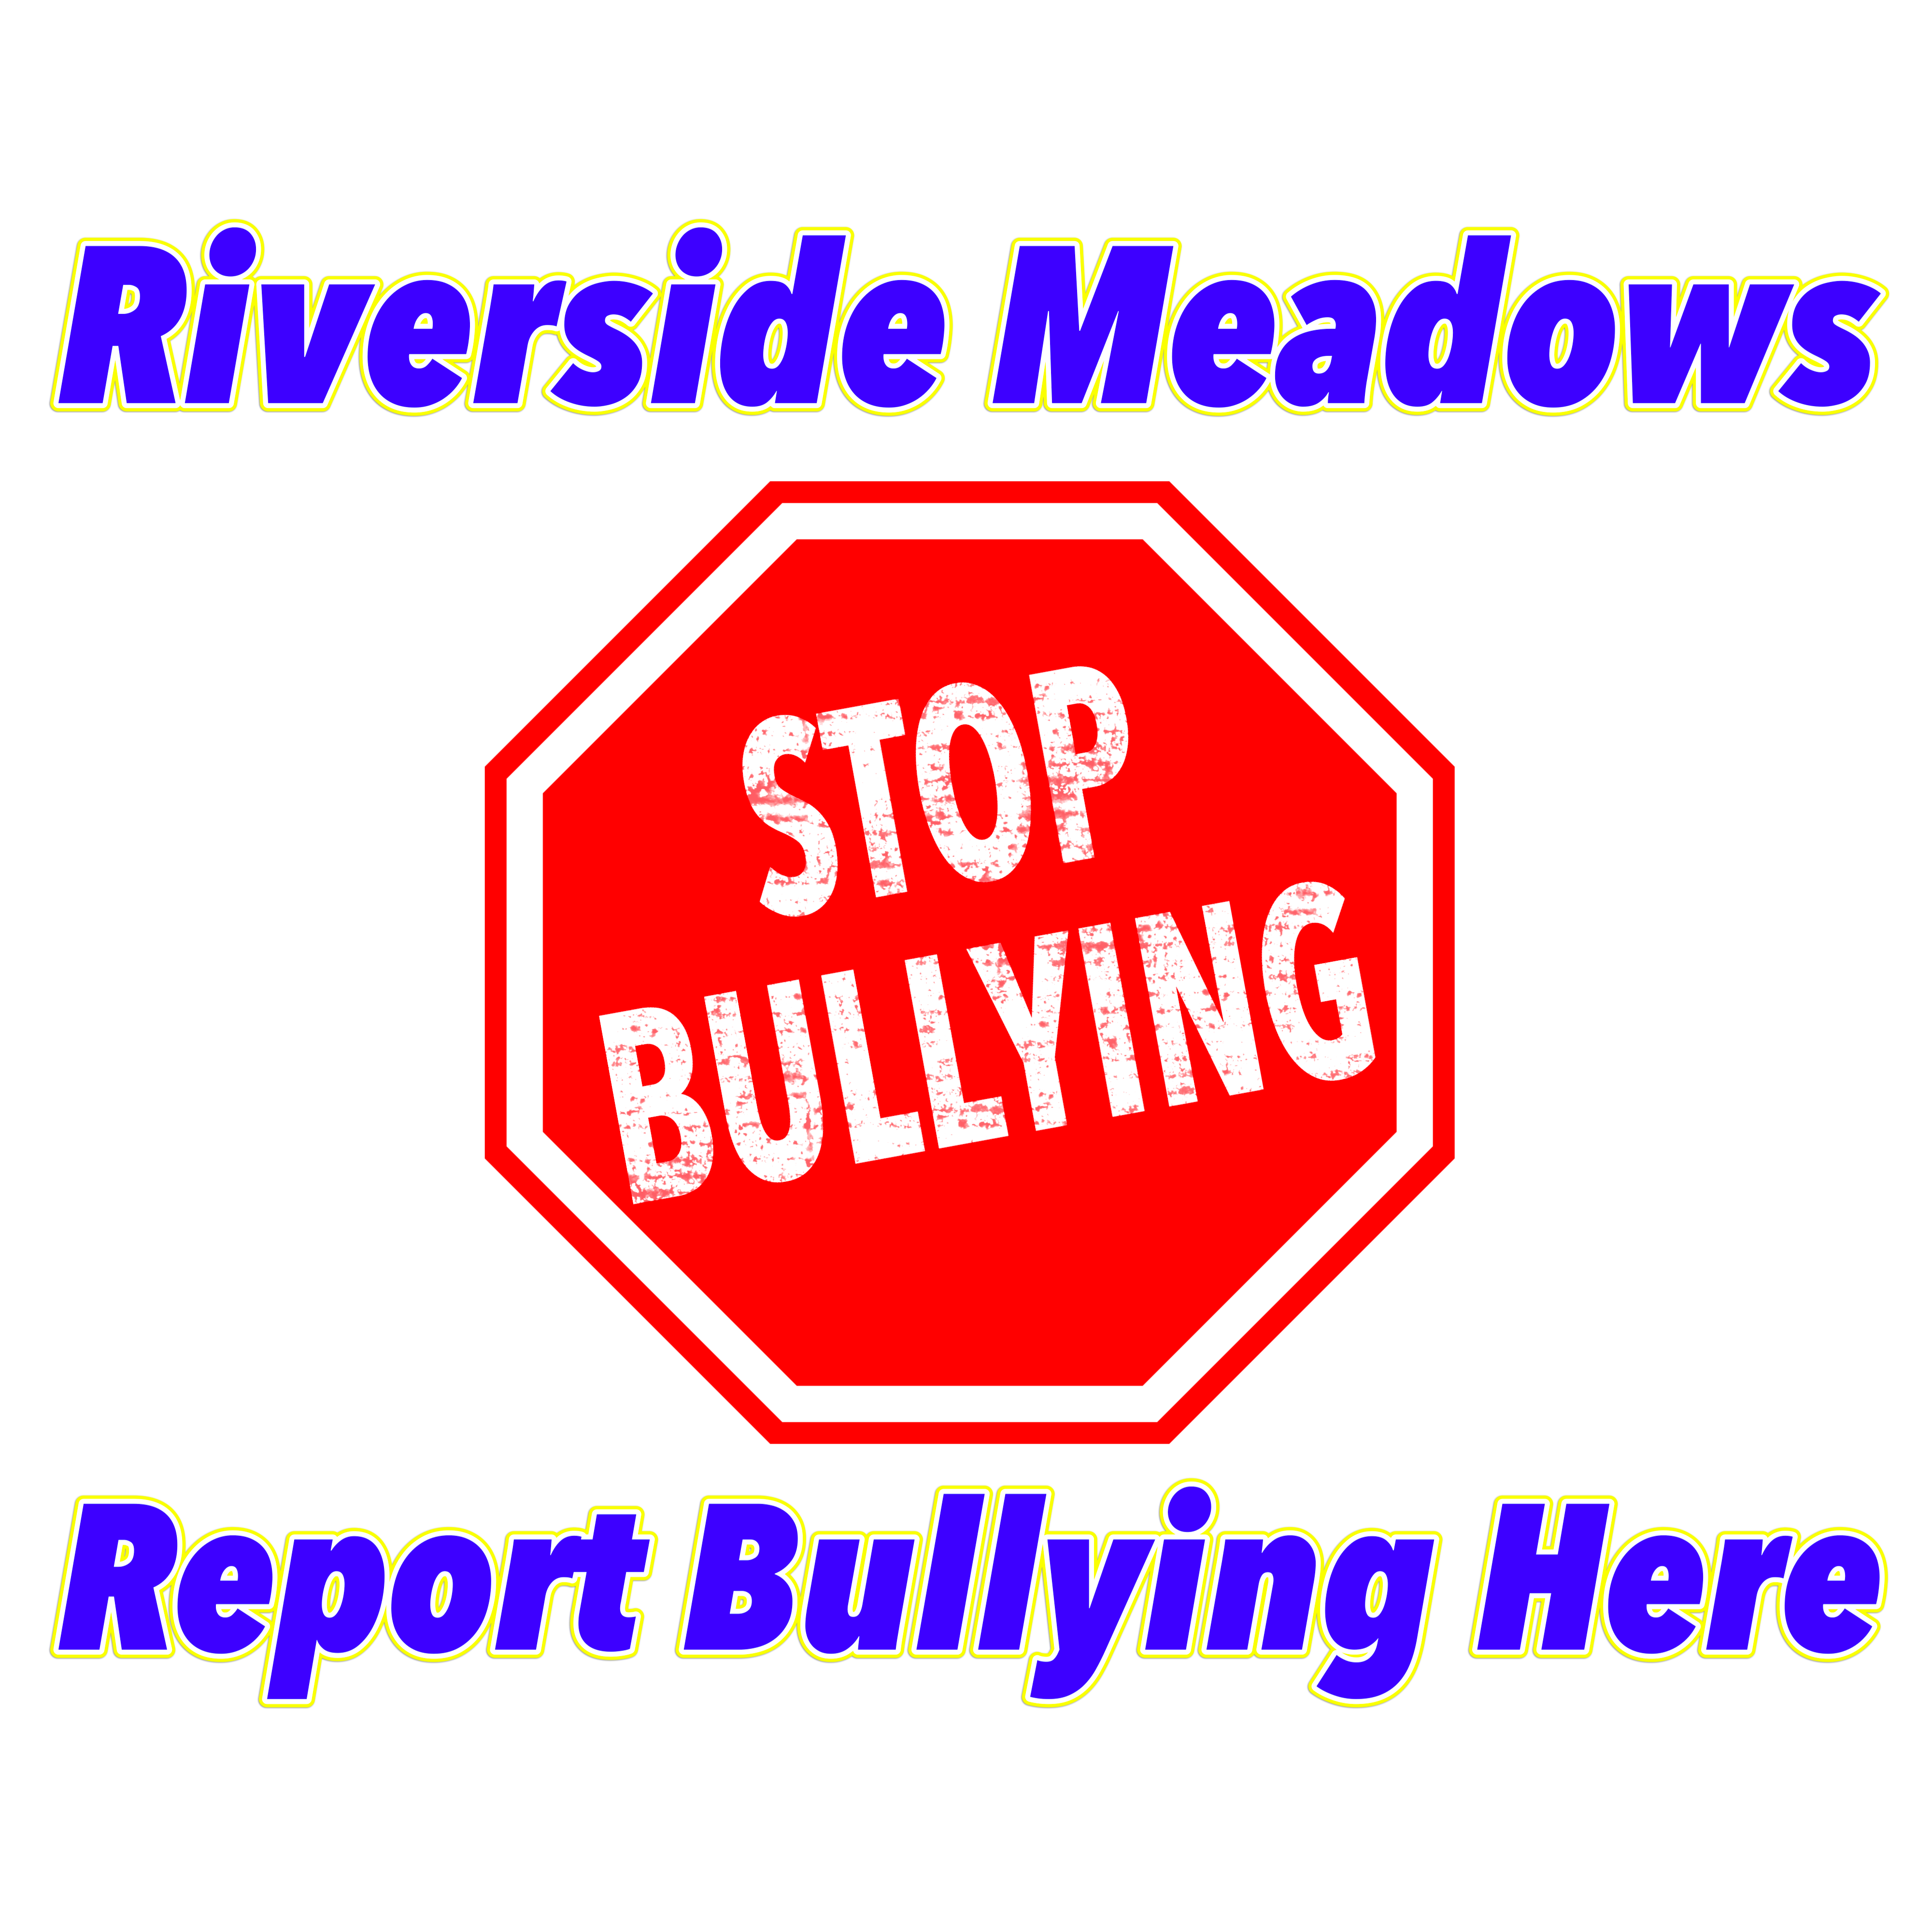 Click here to report bullying